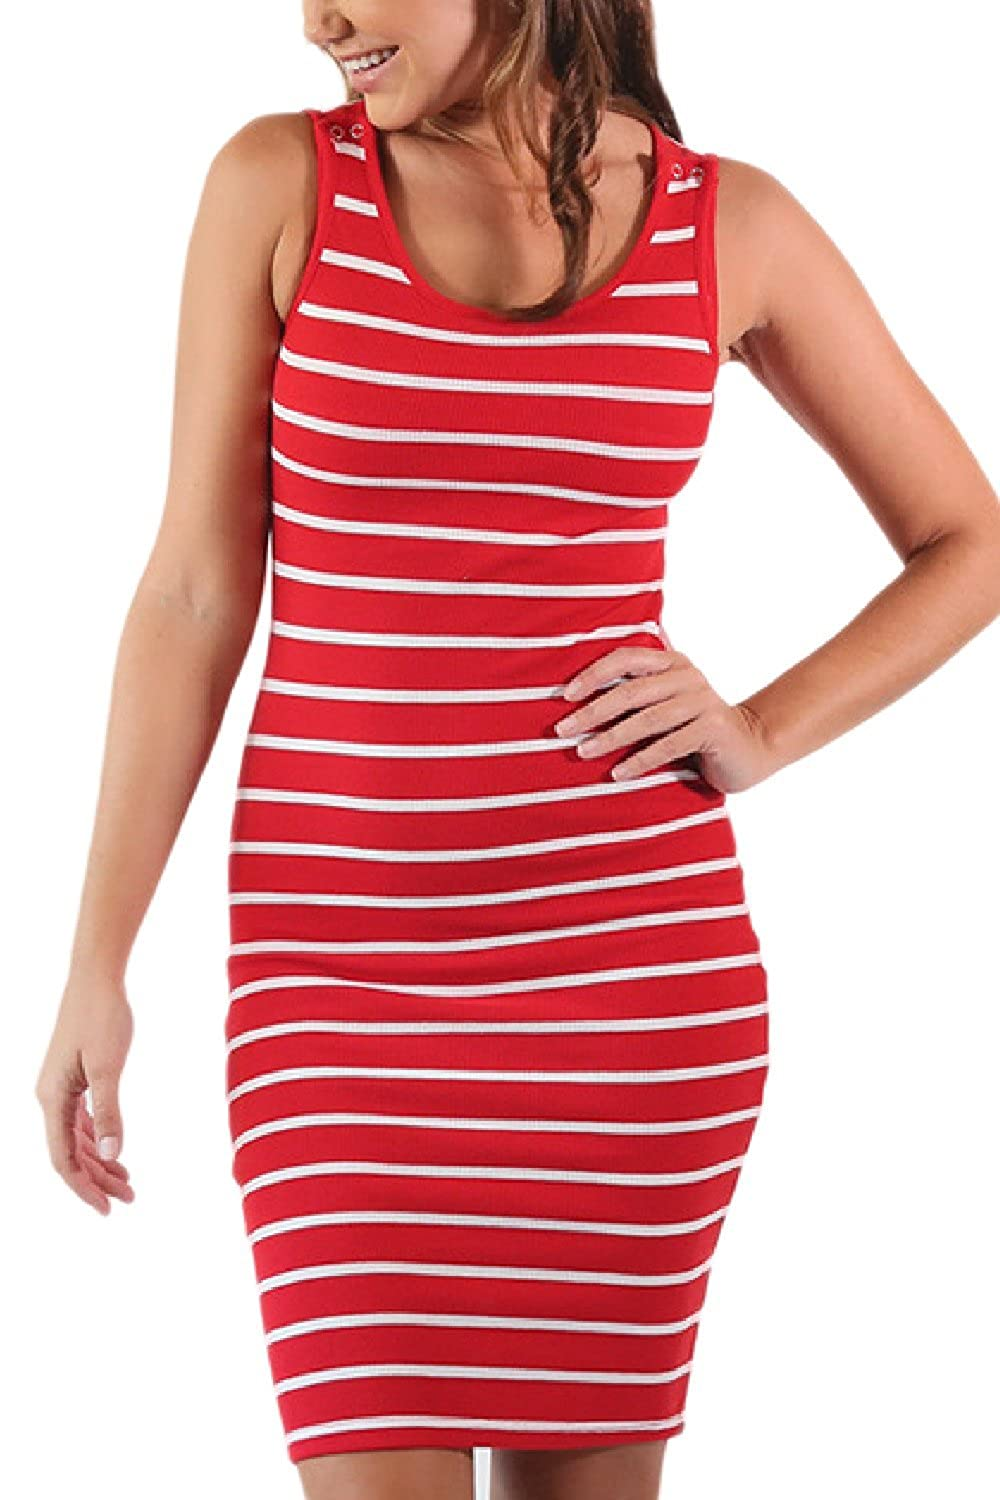 Yacun Womens Maternity Breastfeeding Nursing Dress Stripes Sleeveless CAYC60402